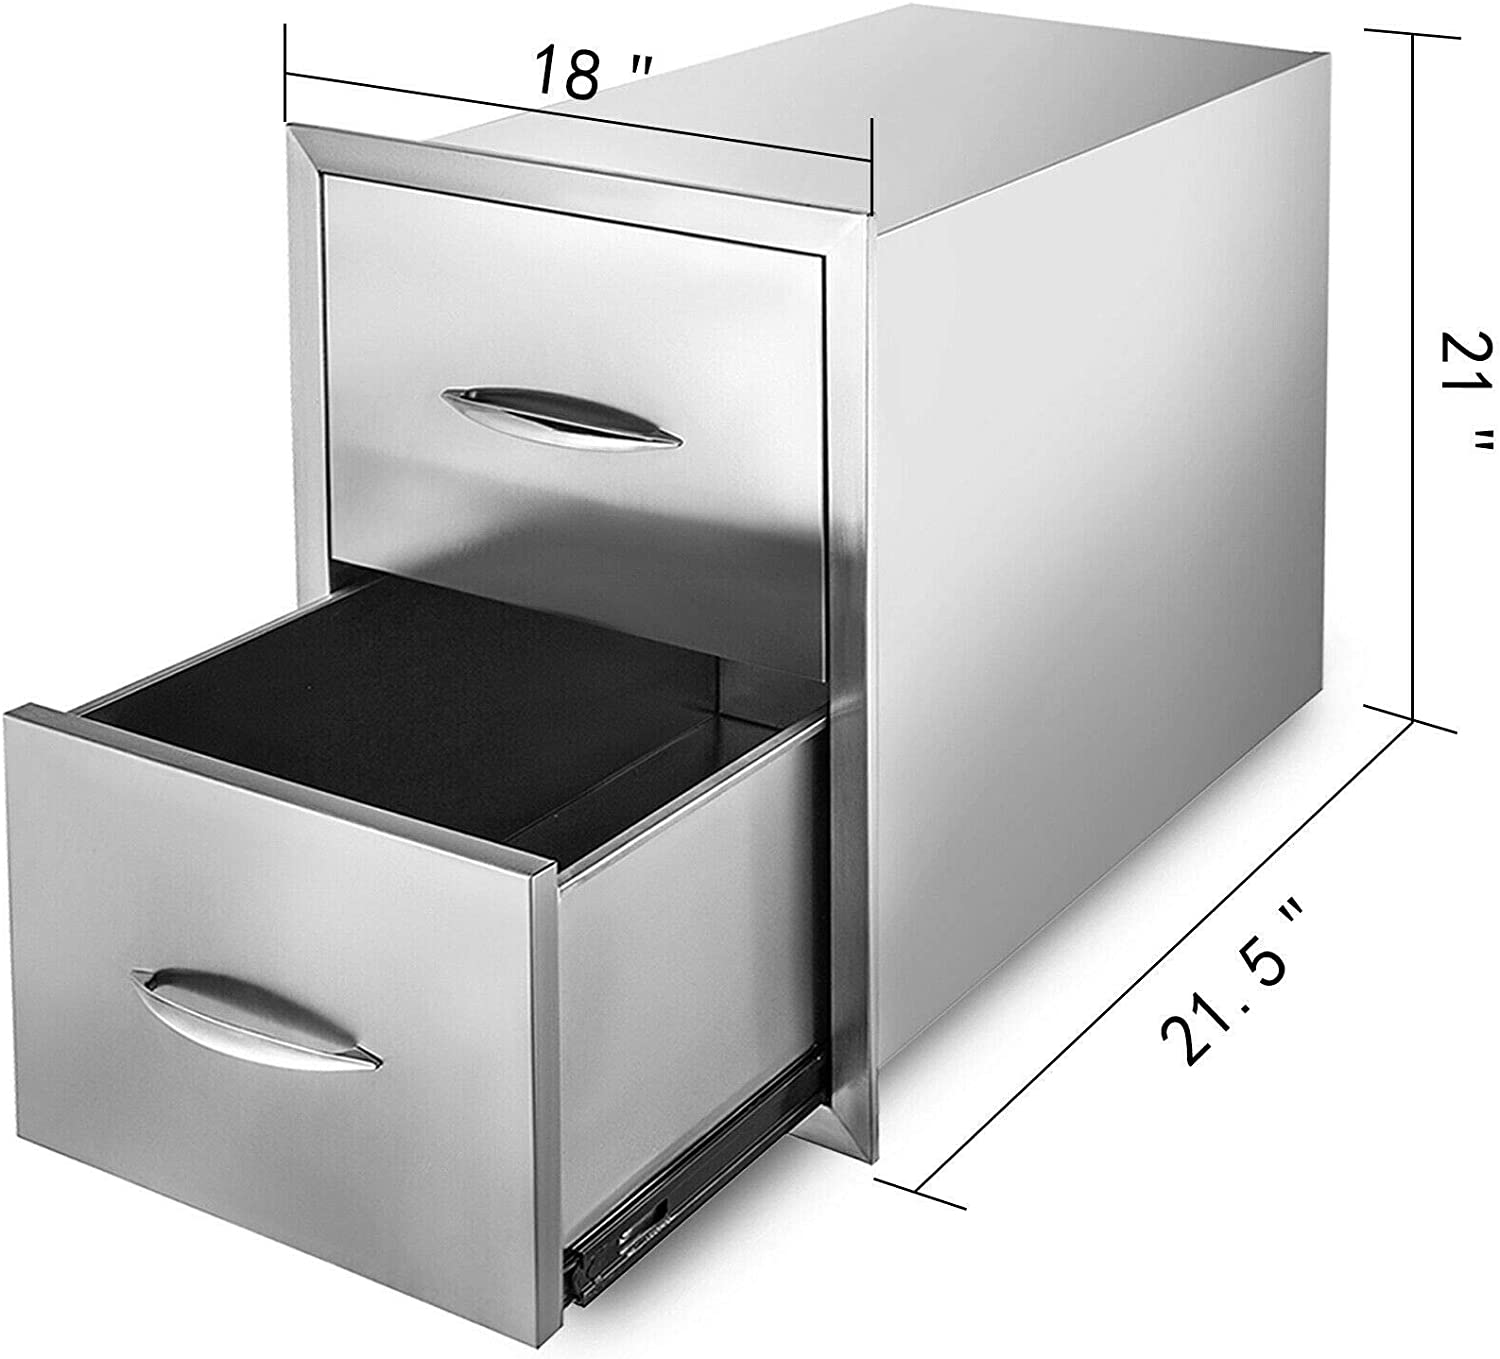 BuoQua 14 x 22.8 x 14.38 Inch Outdoor kitchen Drawer Stainless Steel Double Access Drawer BBQ Island Drawer Storage with Chrome Handle Flush Mount Sliver